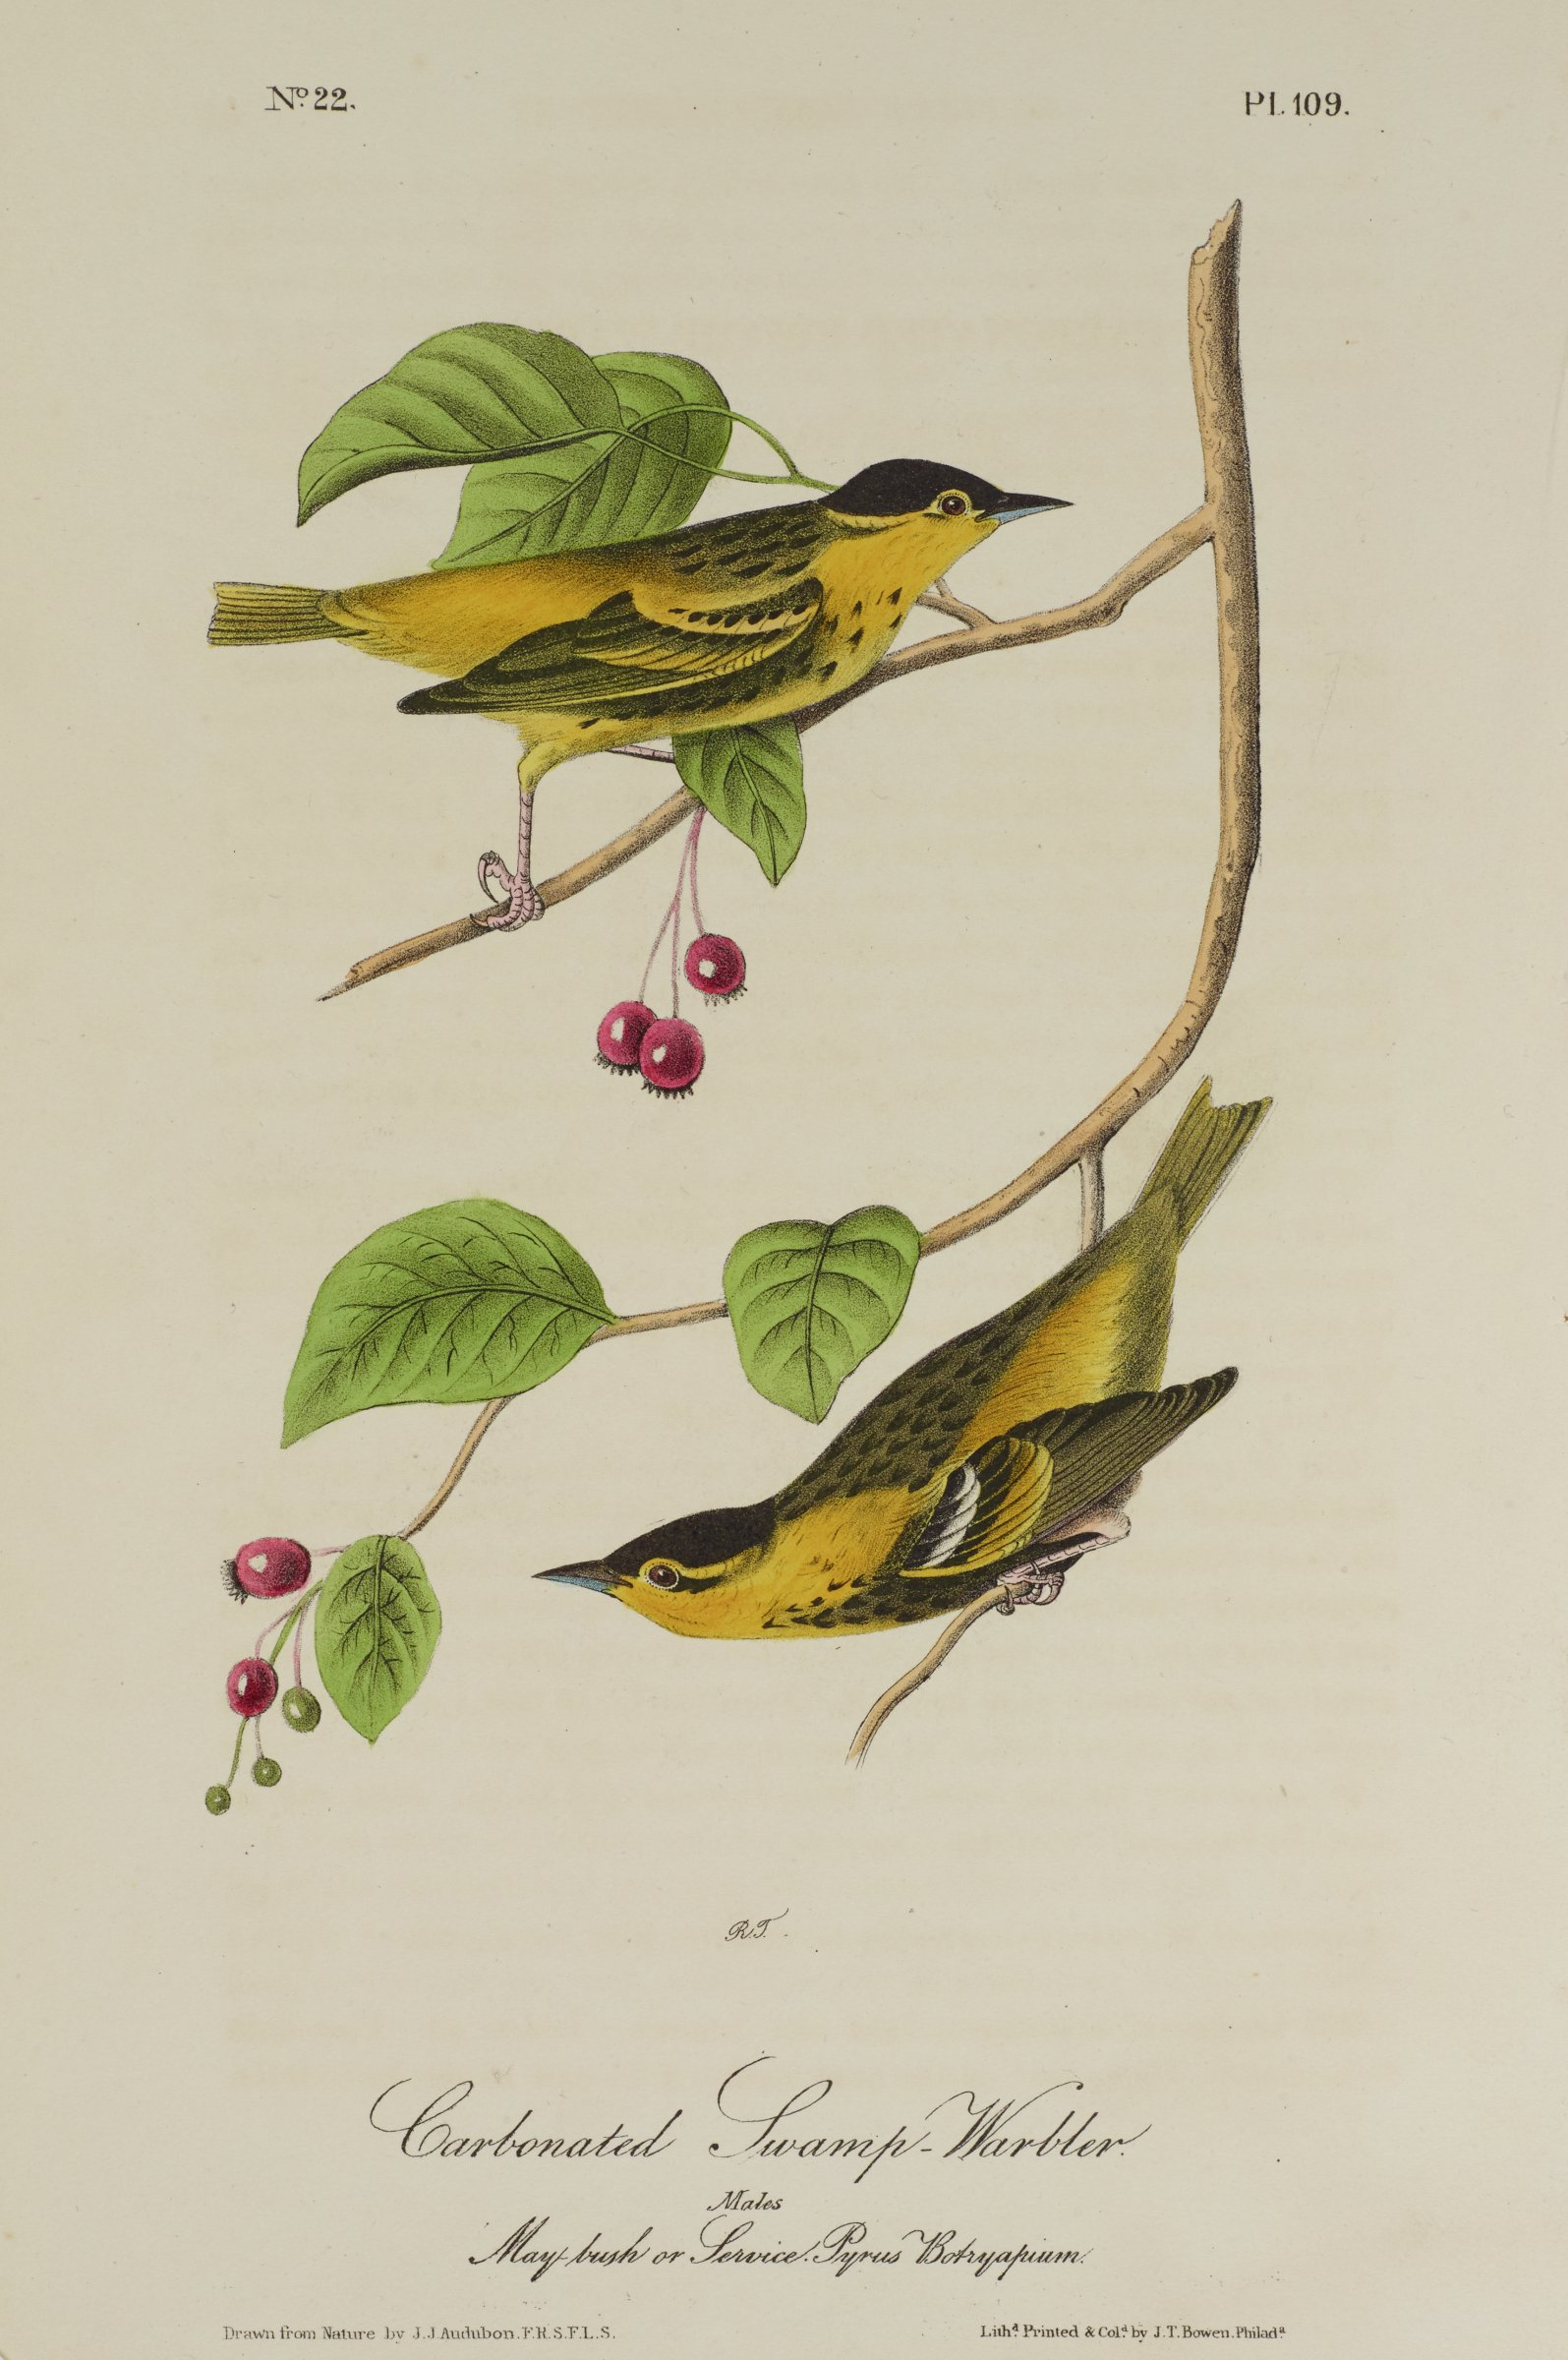 Two birds are depicted perched on a tree branch with red and green buds. The birds are primarily covered in yellow and black feathers. The lower bird has a white stripe on its wings.